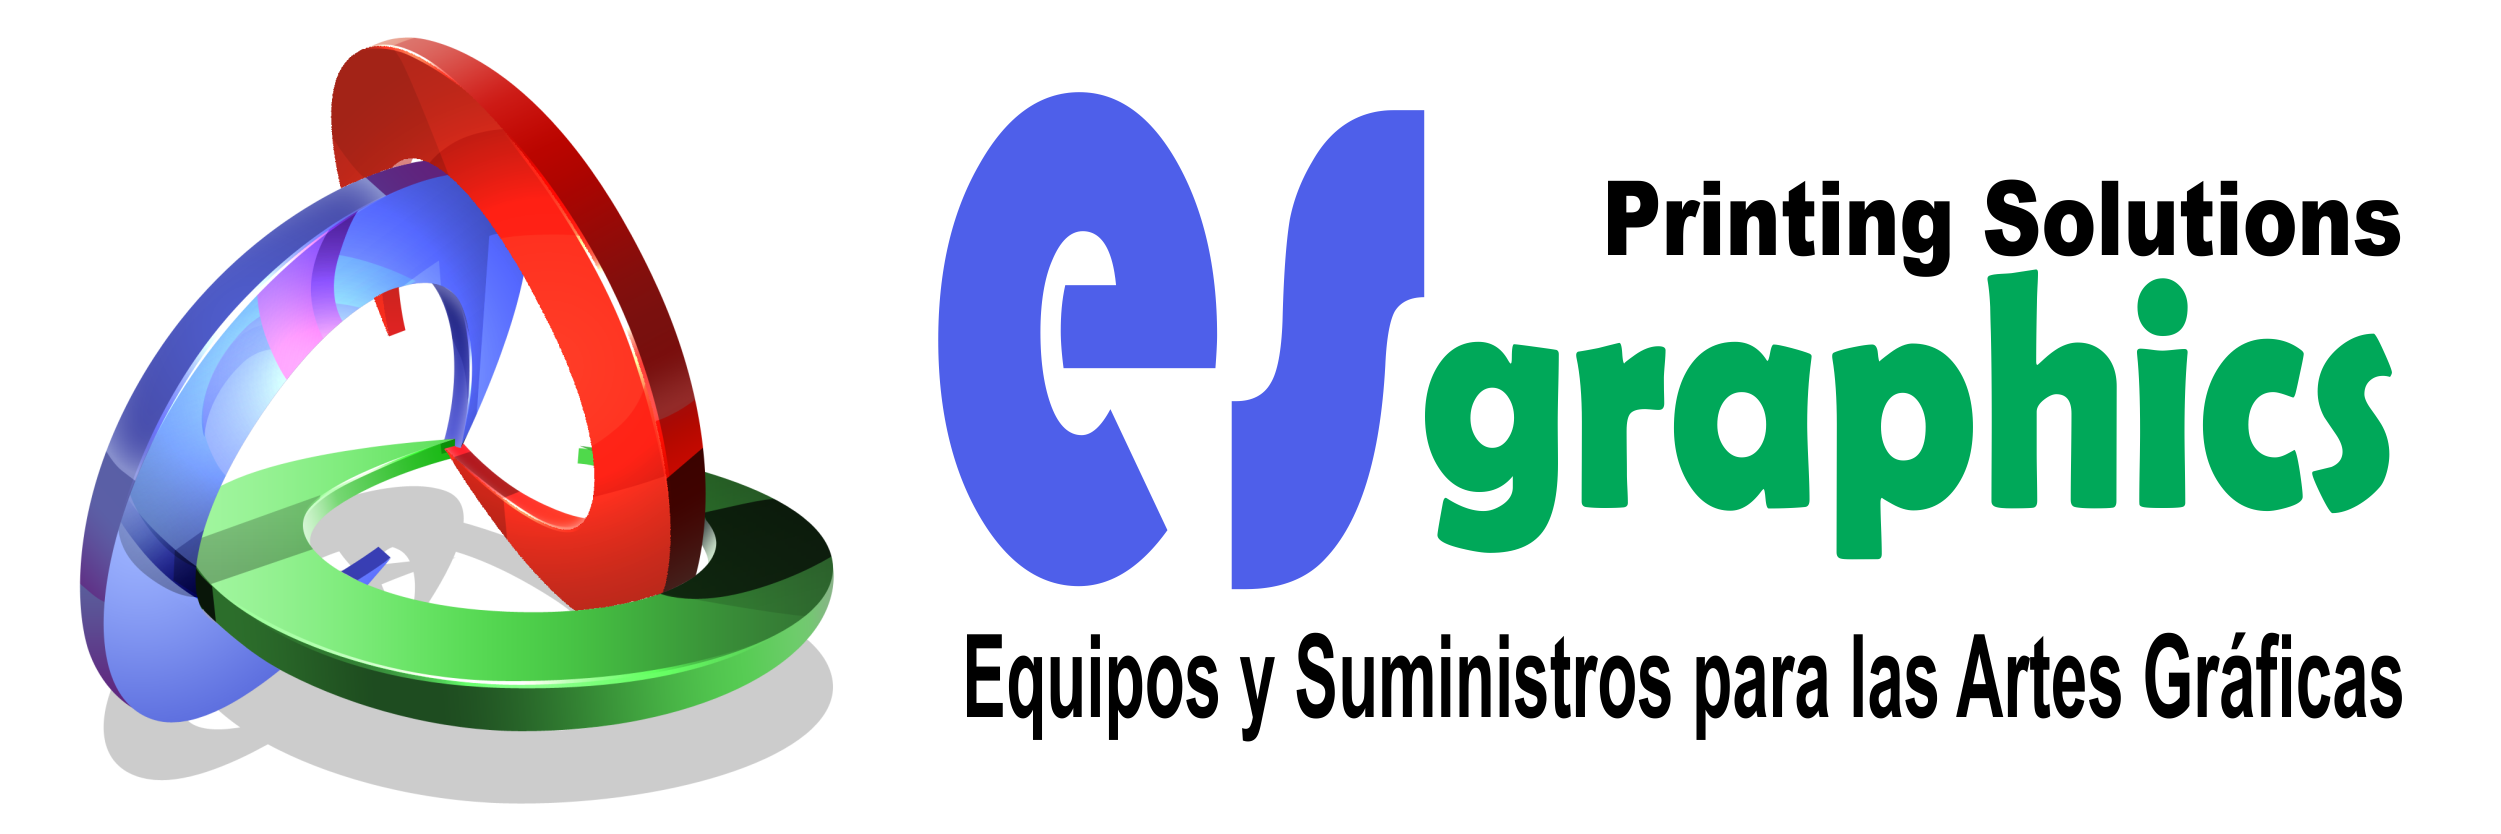 EsGraphics.Mx